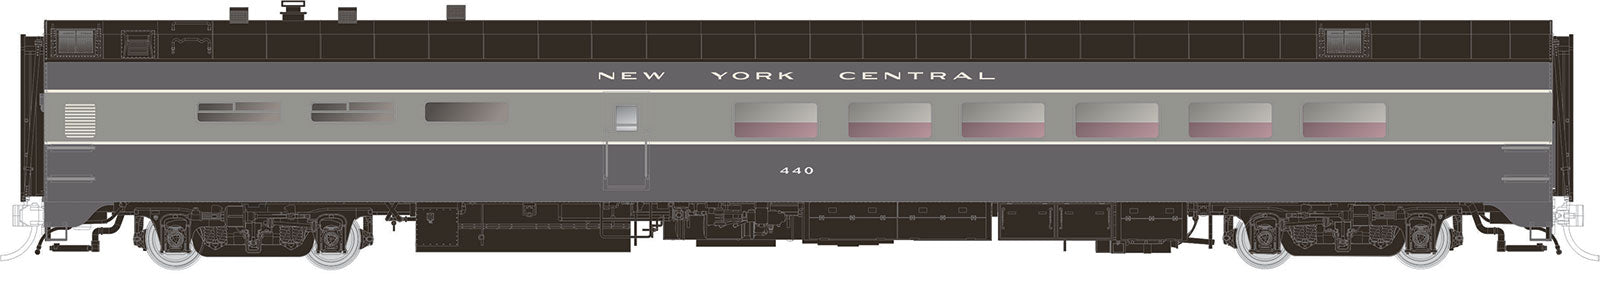 Rapido Trains  NYC (Two-Tone Gray) Pullman-Standard Lightweight Dining Car